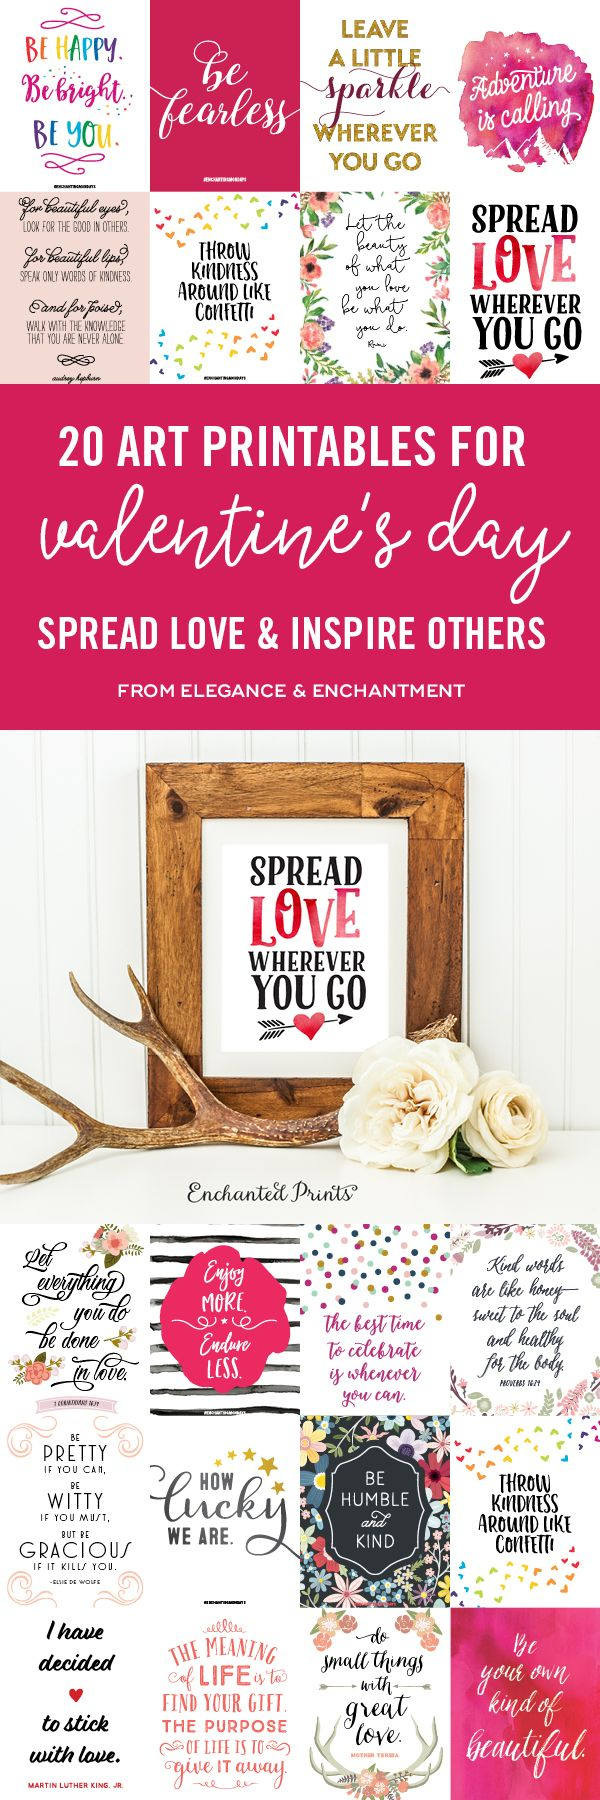 Surprise your family, friends or even a stranger, with a truly inspirational Valentine's Day gift this year. Print and frame one of these 20 or choose from over 160 art printables from the Enchanting Mondays Library. Includes two free downloads! When you inspire somebody else, they will be motivated to do the same for others, making these the gifts that keep giving. // From Elegance & Enchantment.